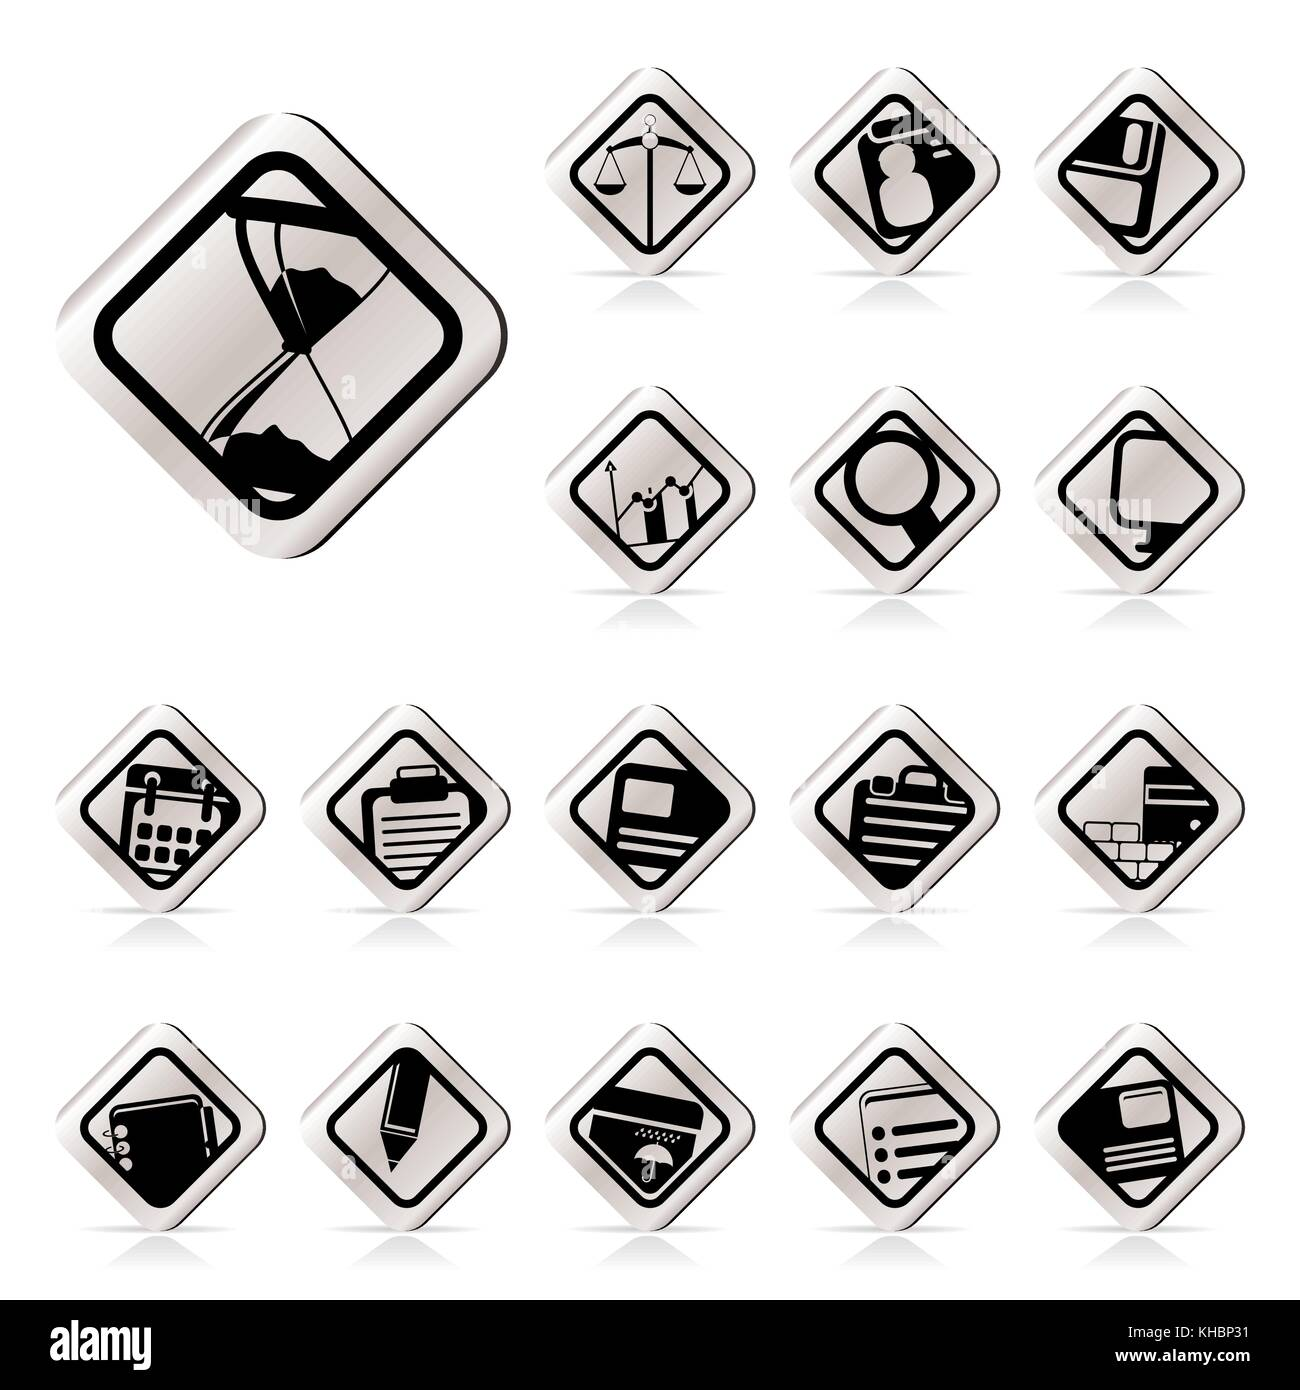 Simple Business and office icons vector icon set - Stock Image